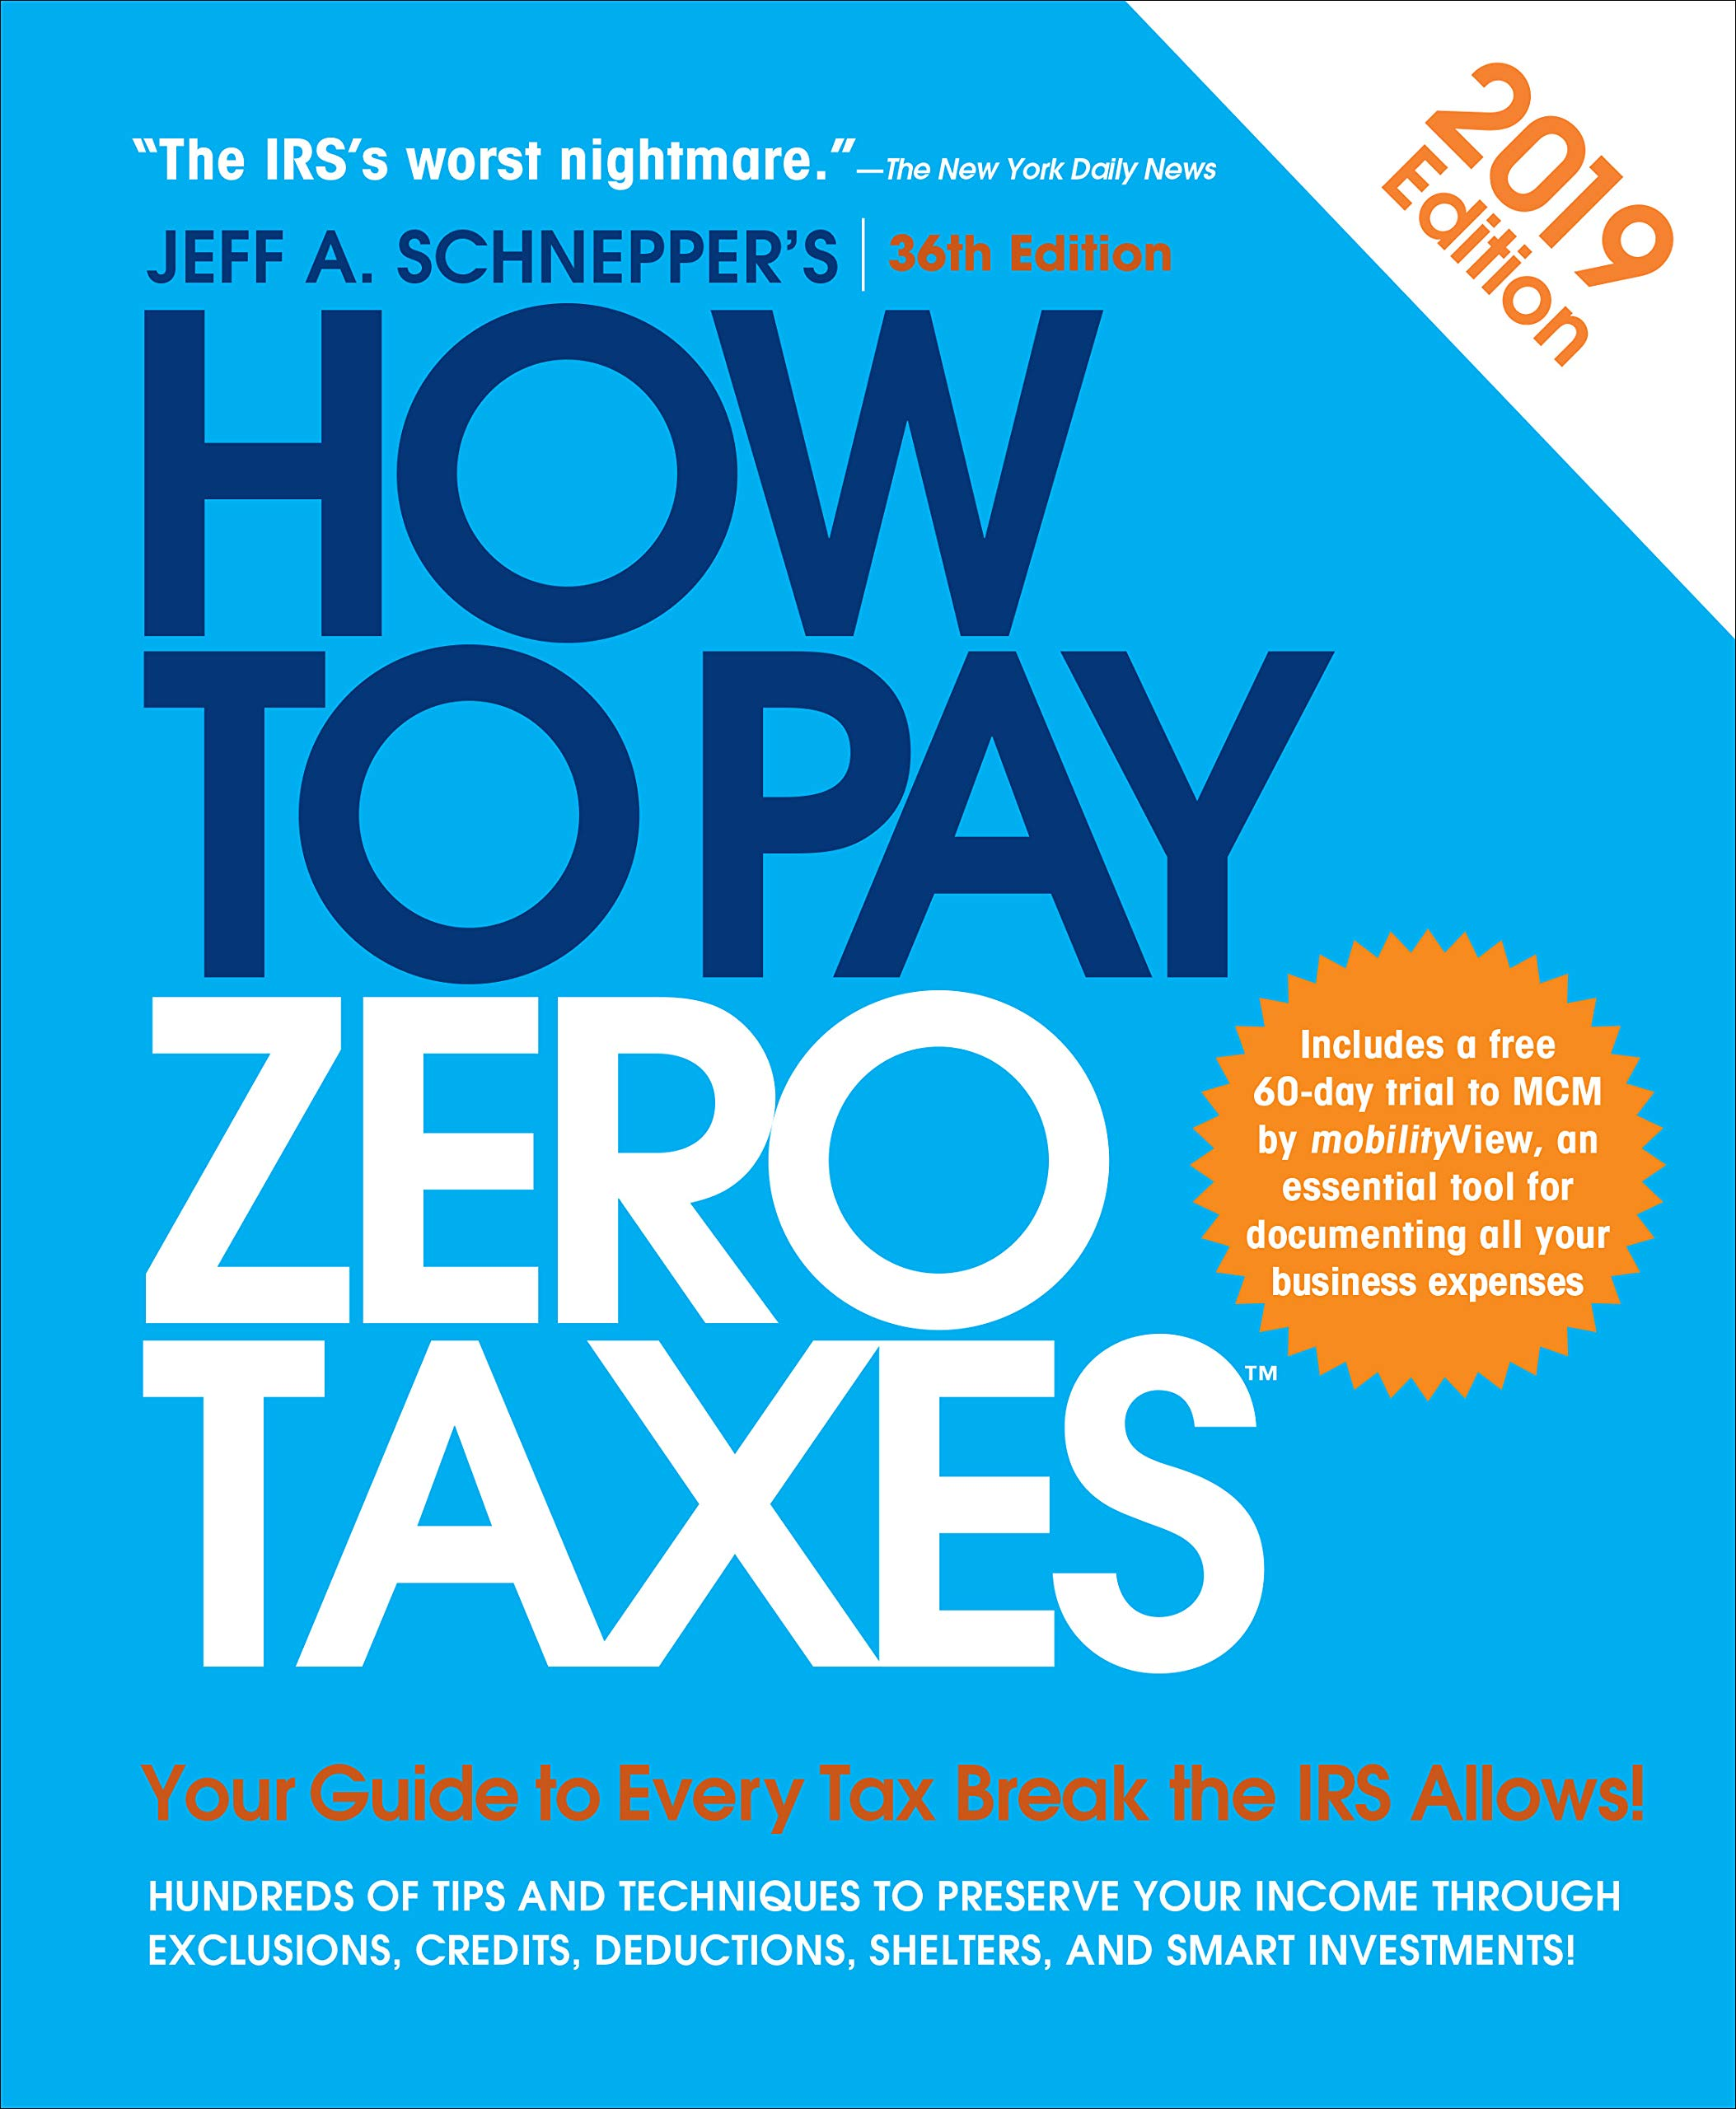 475 Tax Deductions for Businesses and Self-Employed Individuals An A-to-Z Guide to Hundreds of Tax Write-Offs